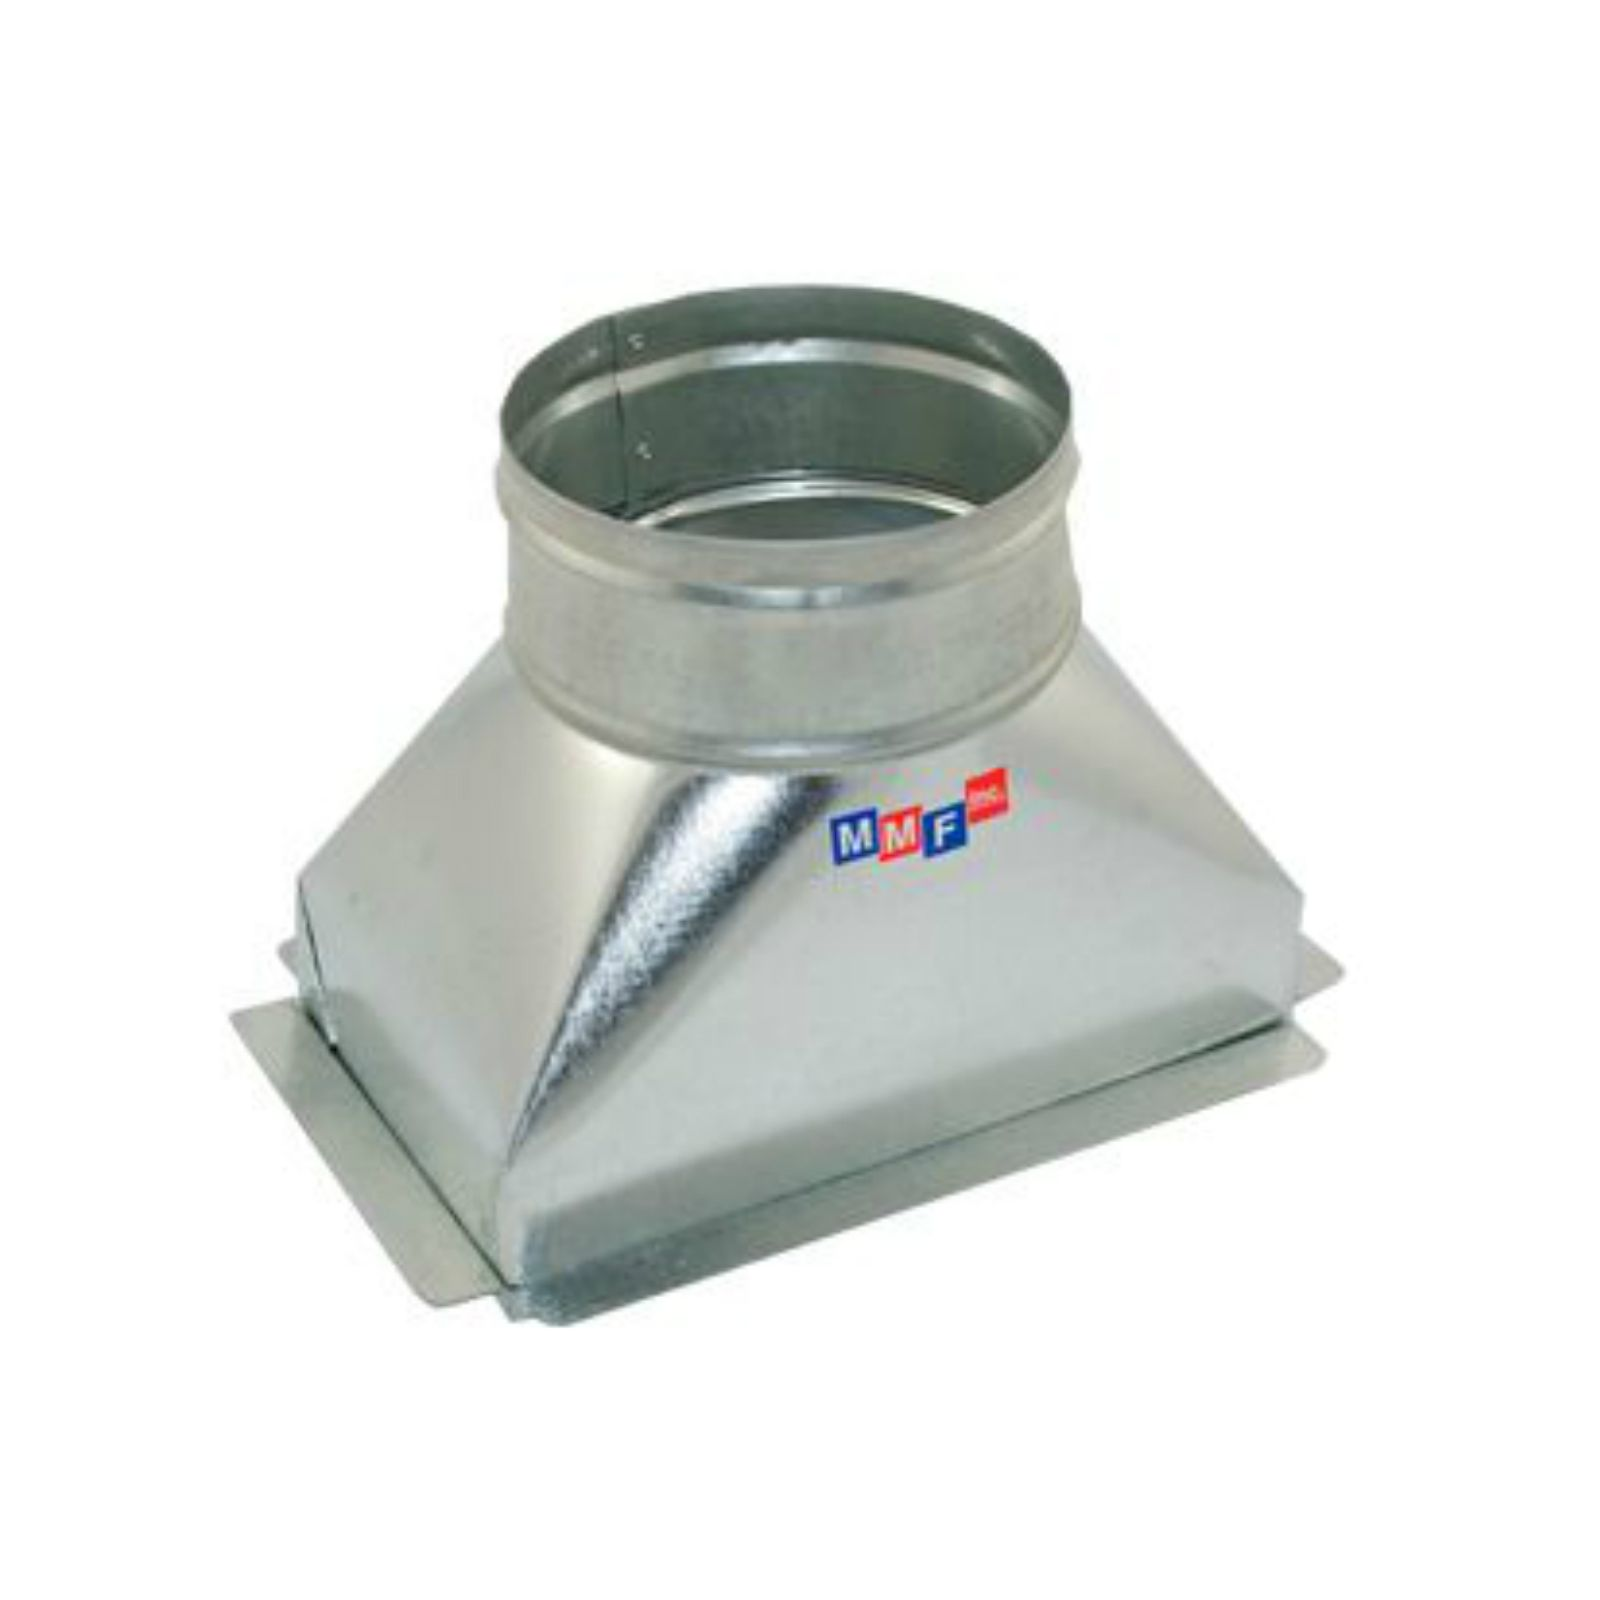 "Modular Metal BTSFG160609P - Sealed Floor Box - 30 Gauge - With Plaster Ground Flange 16"" X 06"" To 09"" Round"